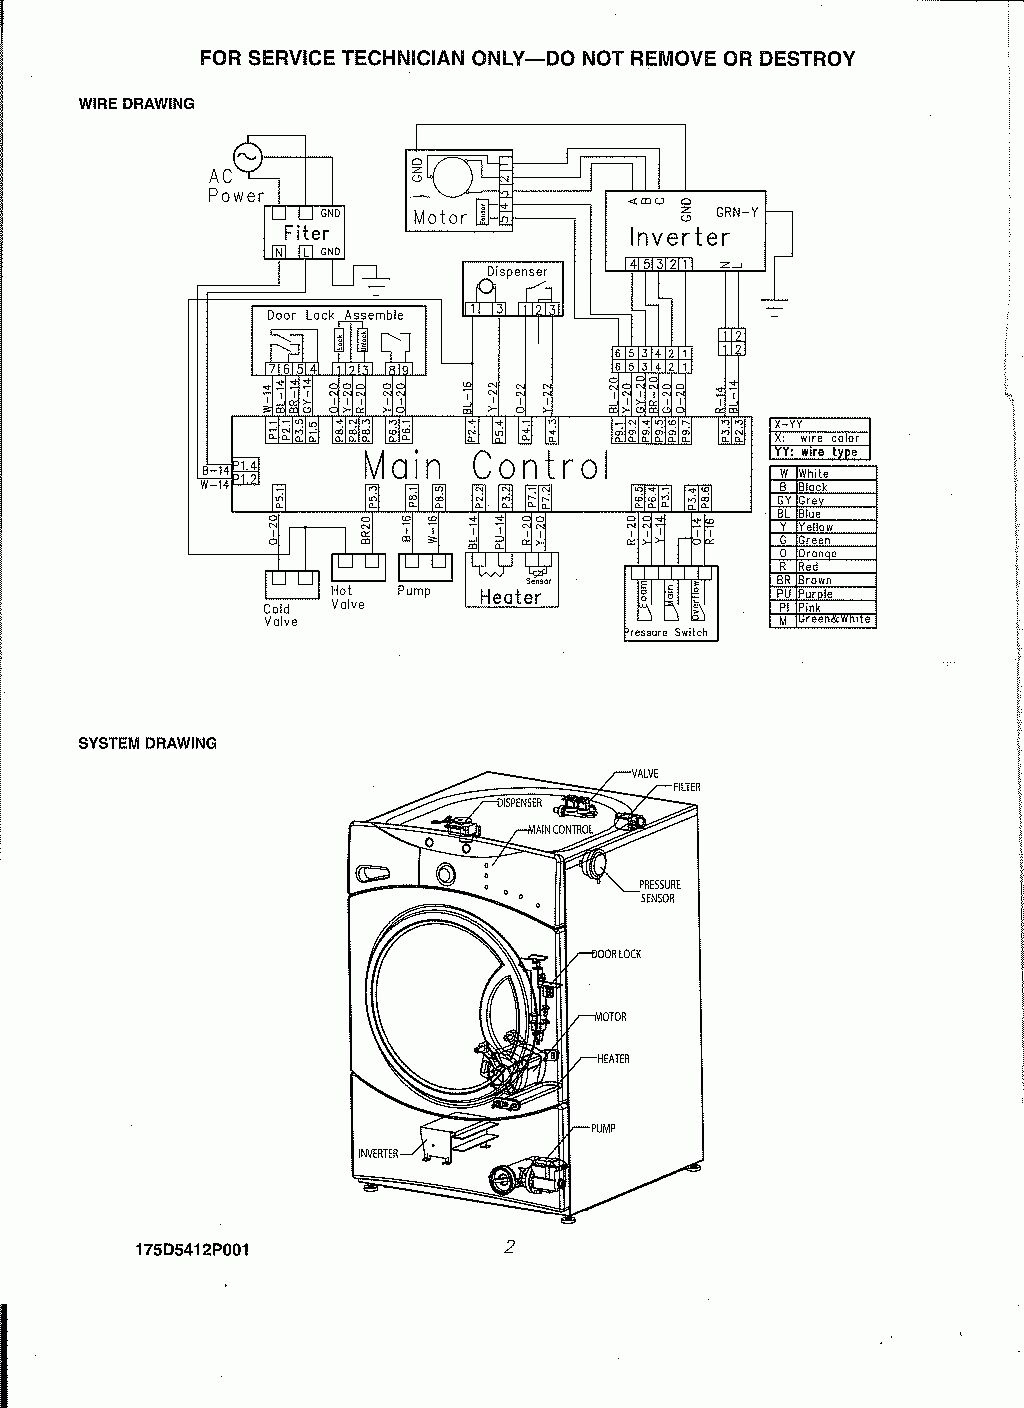 Whirlpool Washing Machine Manuals Auto Electrical Wiring Diagram Wtw5900sw0 Automatic Washer Parts And Diagrams Schematics Machines Ge Manual Hudson 1600 Download For Samsung